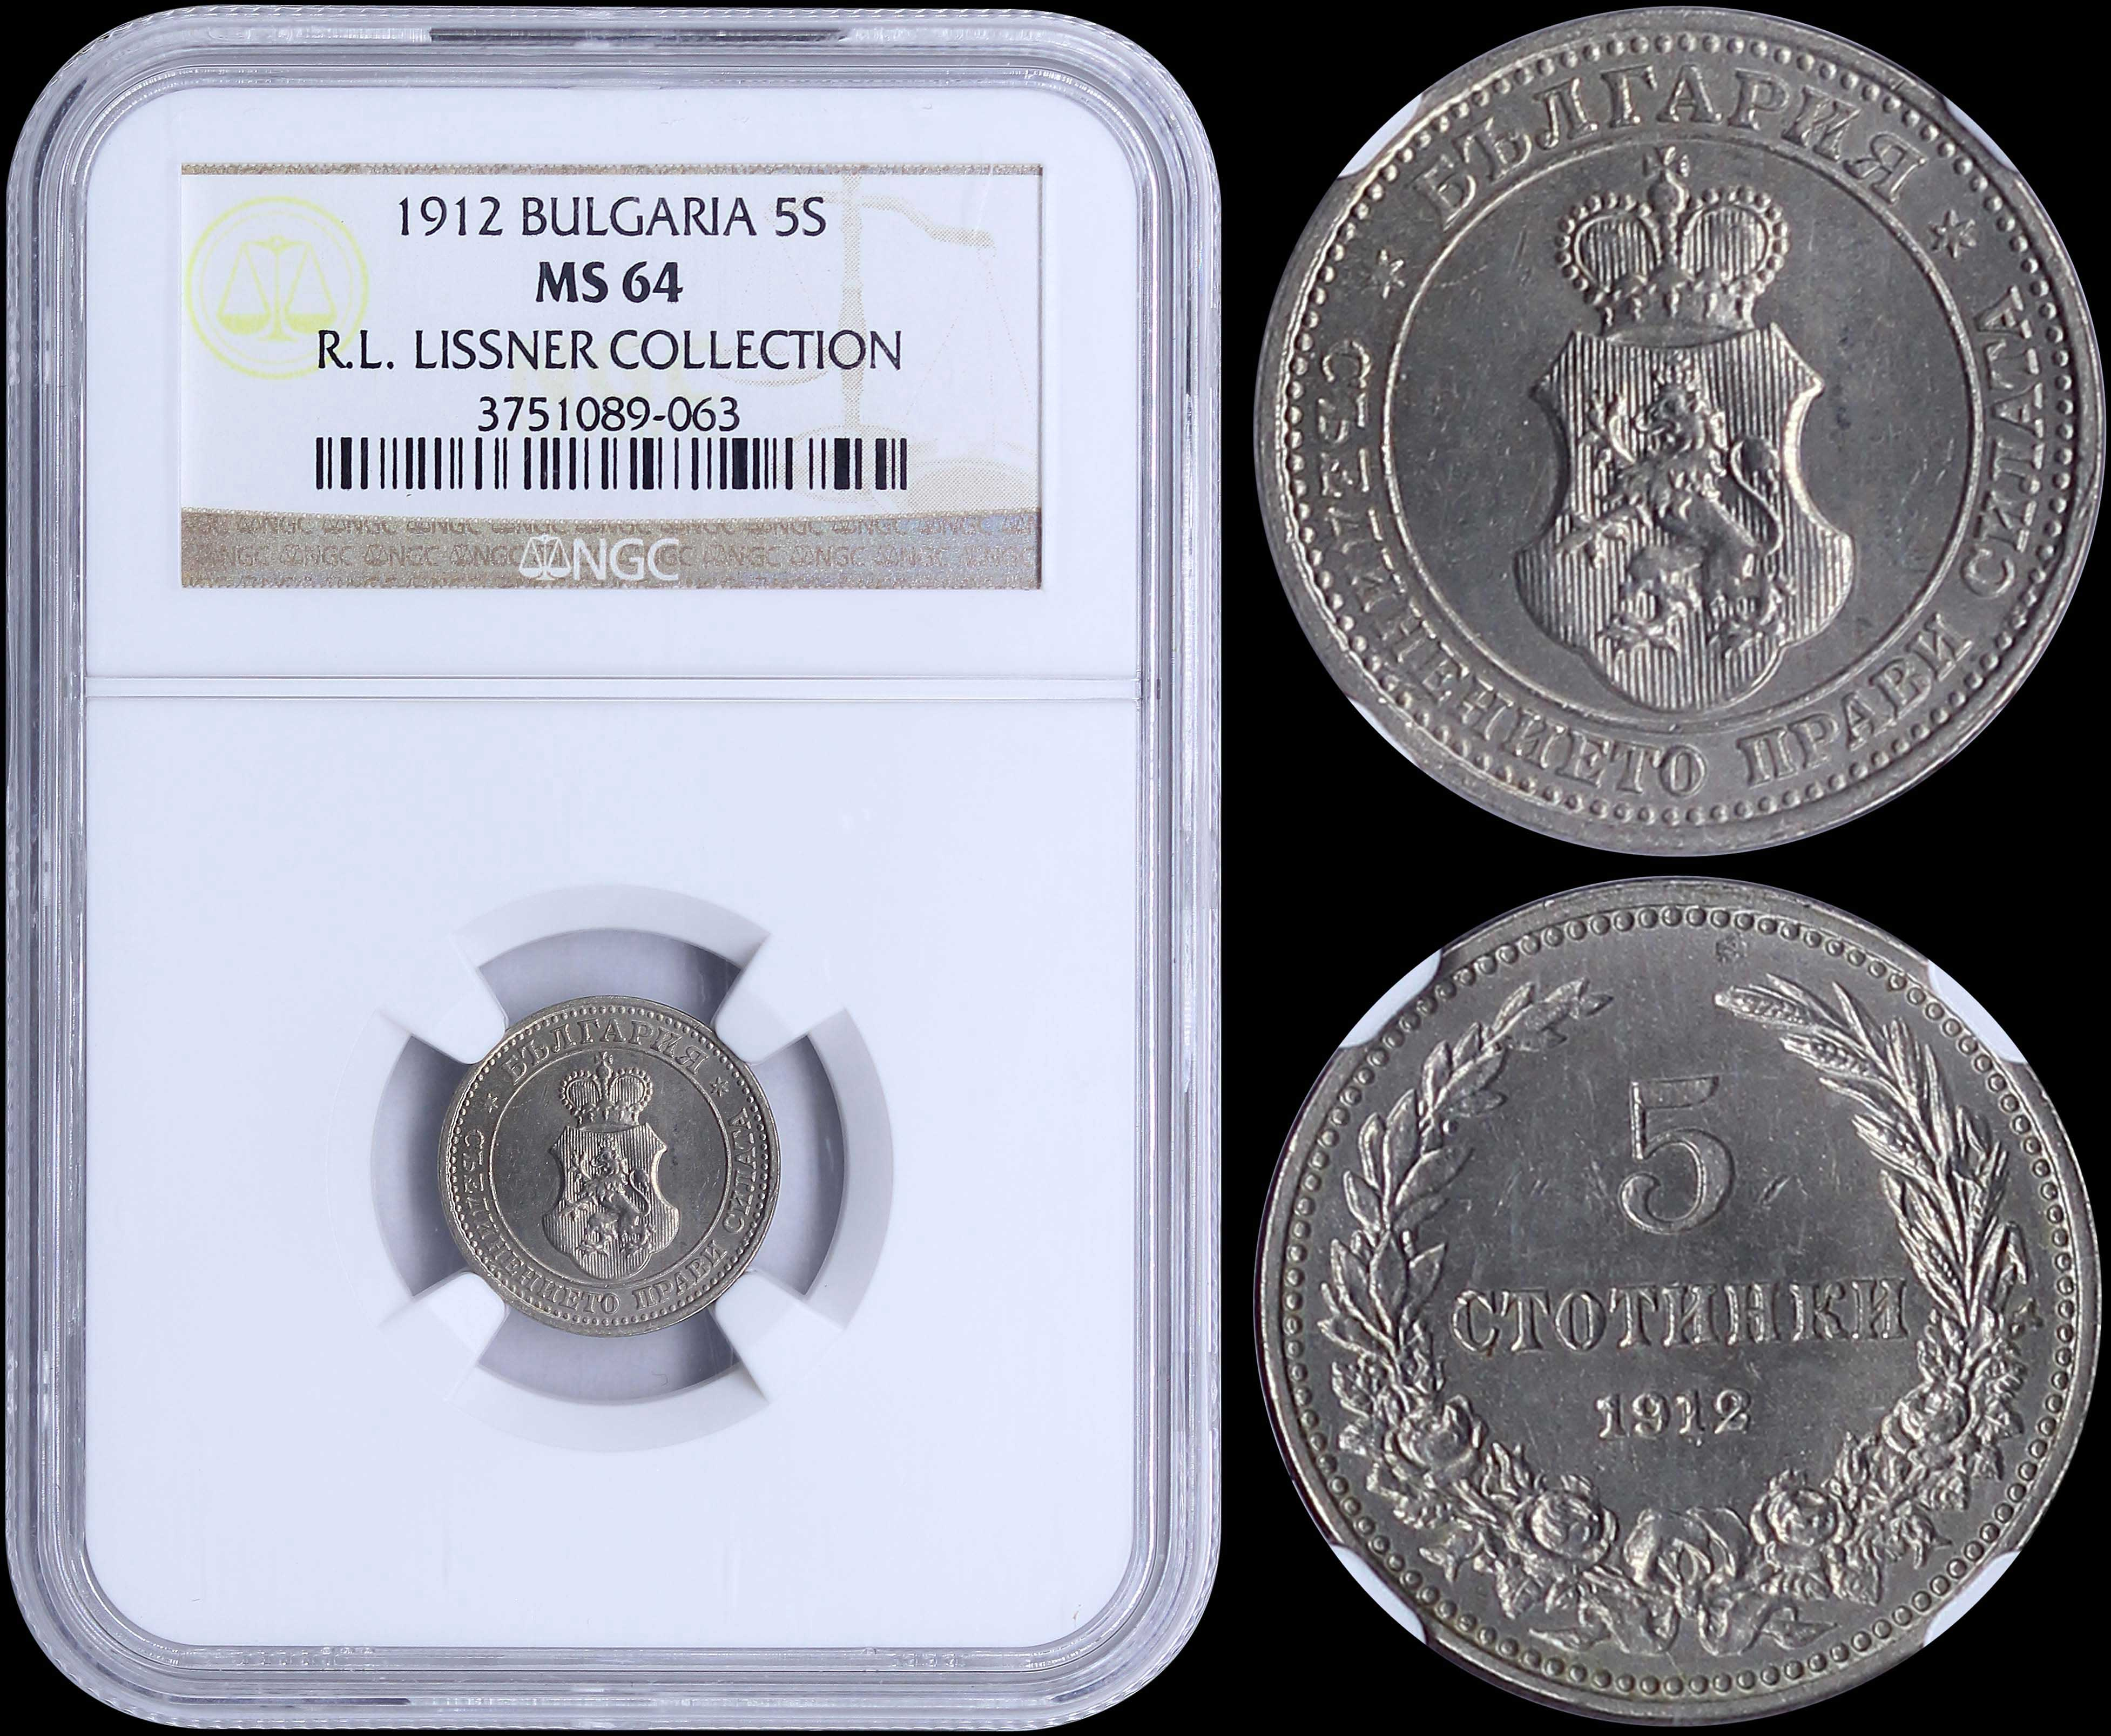 Lot 6691 - -  COINS & TOKENS COINS & TOKENS OF EUROPEAN COUNTRIES -  A. Karamitsos Public & Live Internet Auction 682 (Part B) Coins, Medals & Banknotes